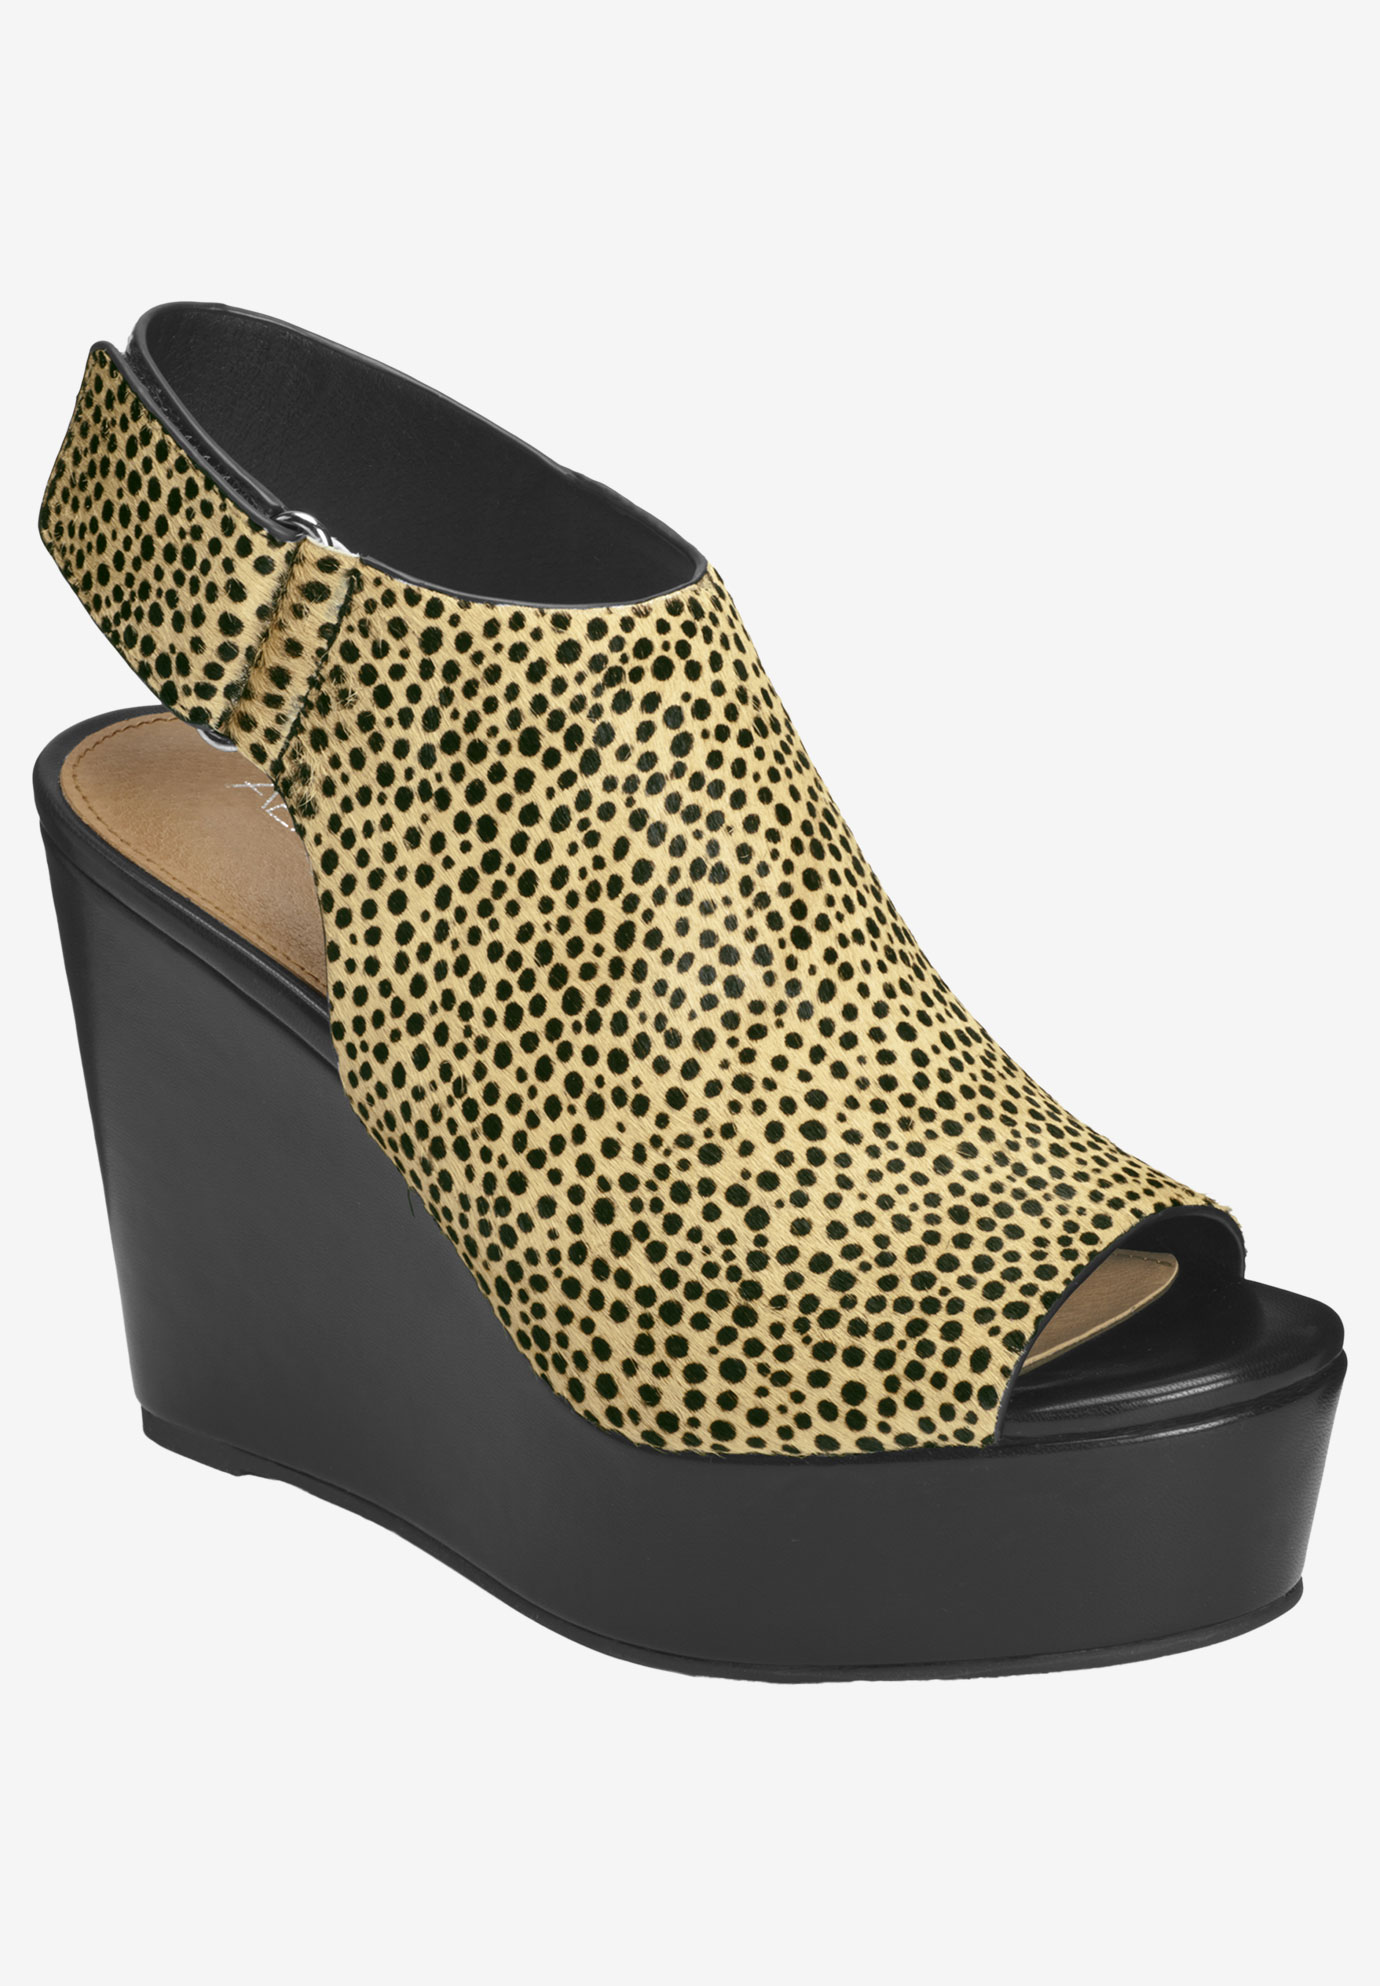 Southampton Wedge by Aerosoles Platinum,